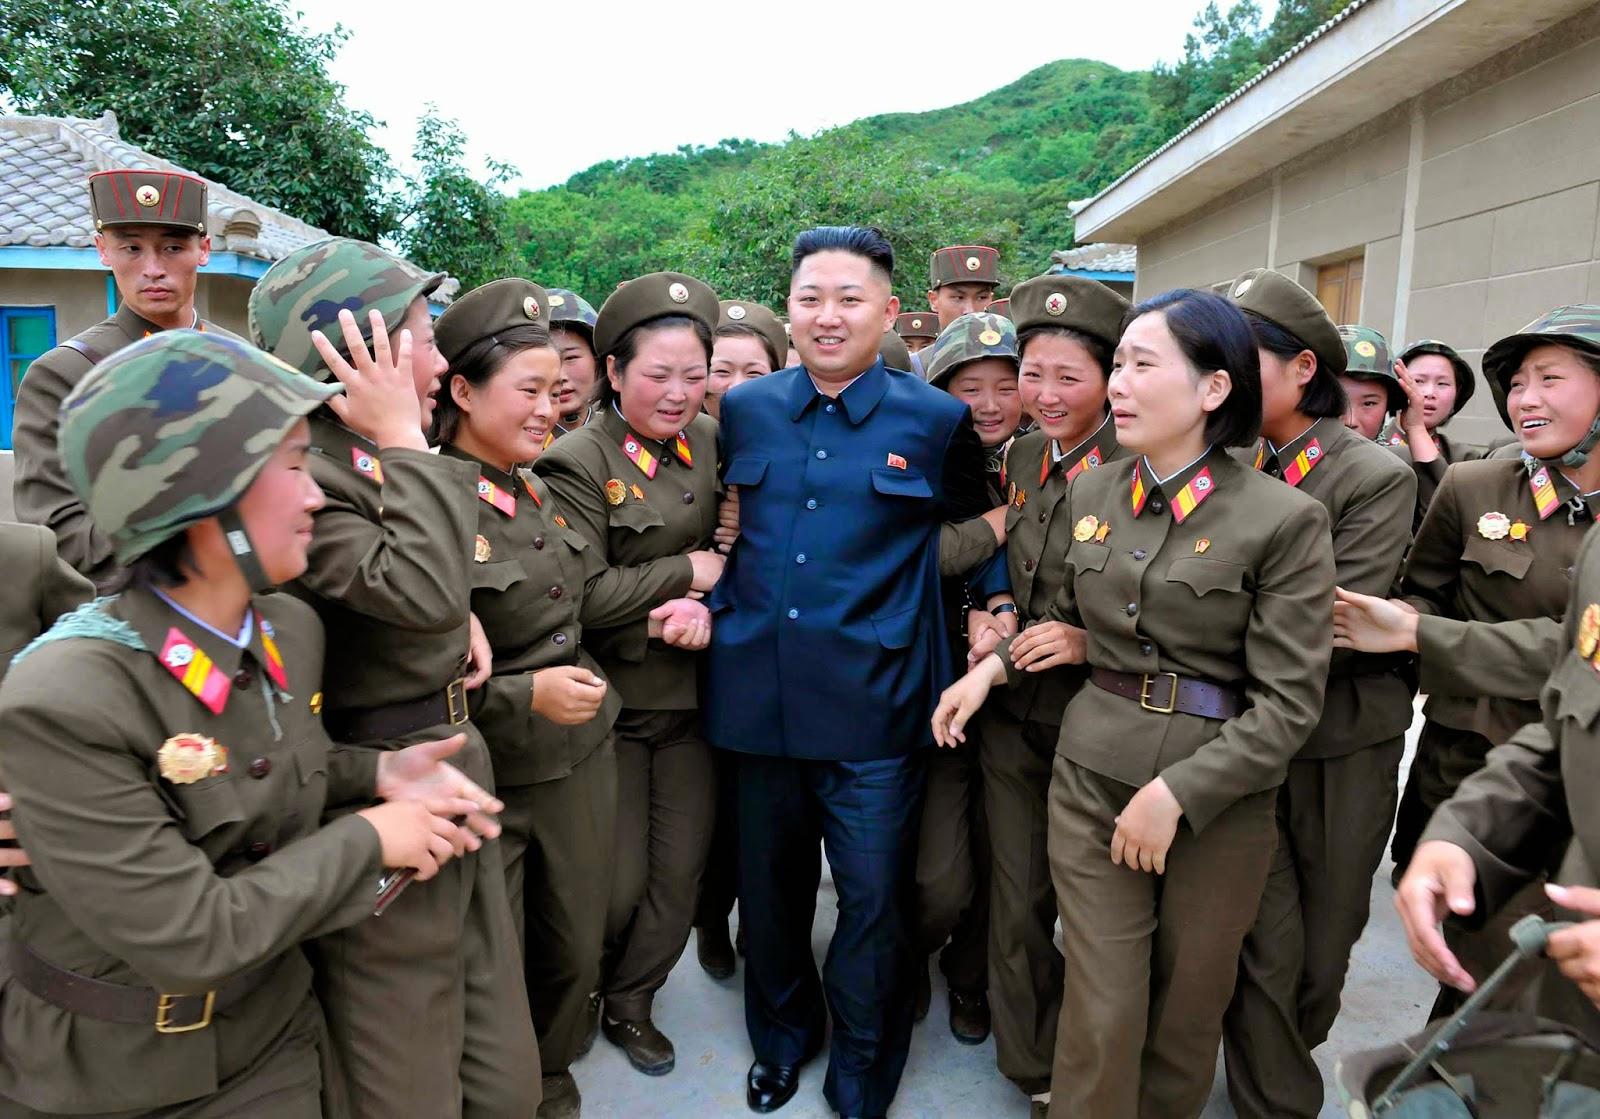 the Army officers are very happy to see the president Kim Jong-un